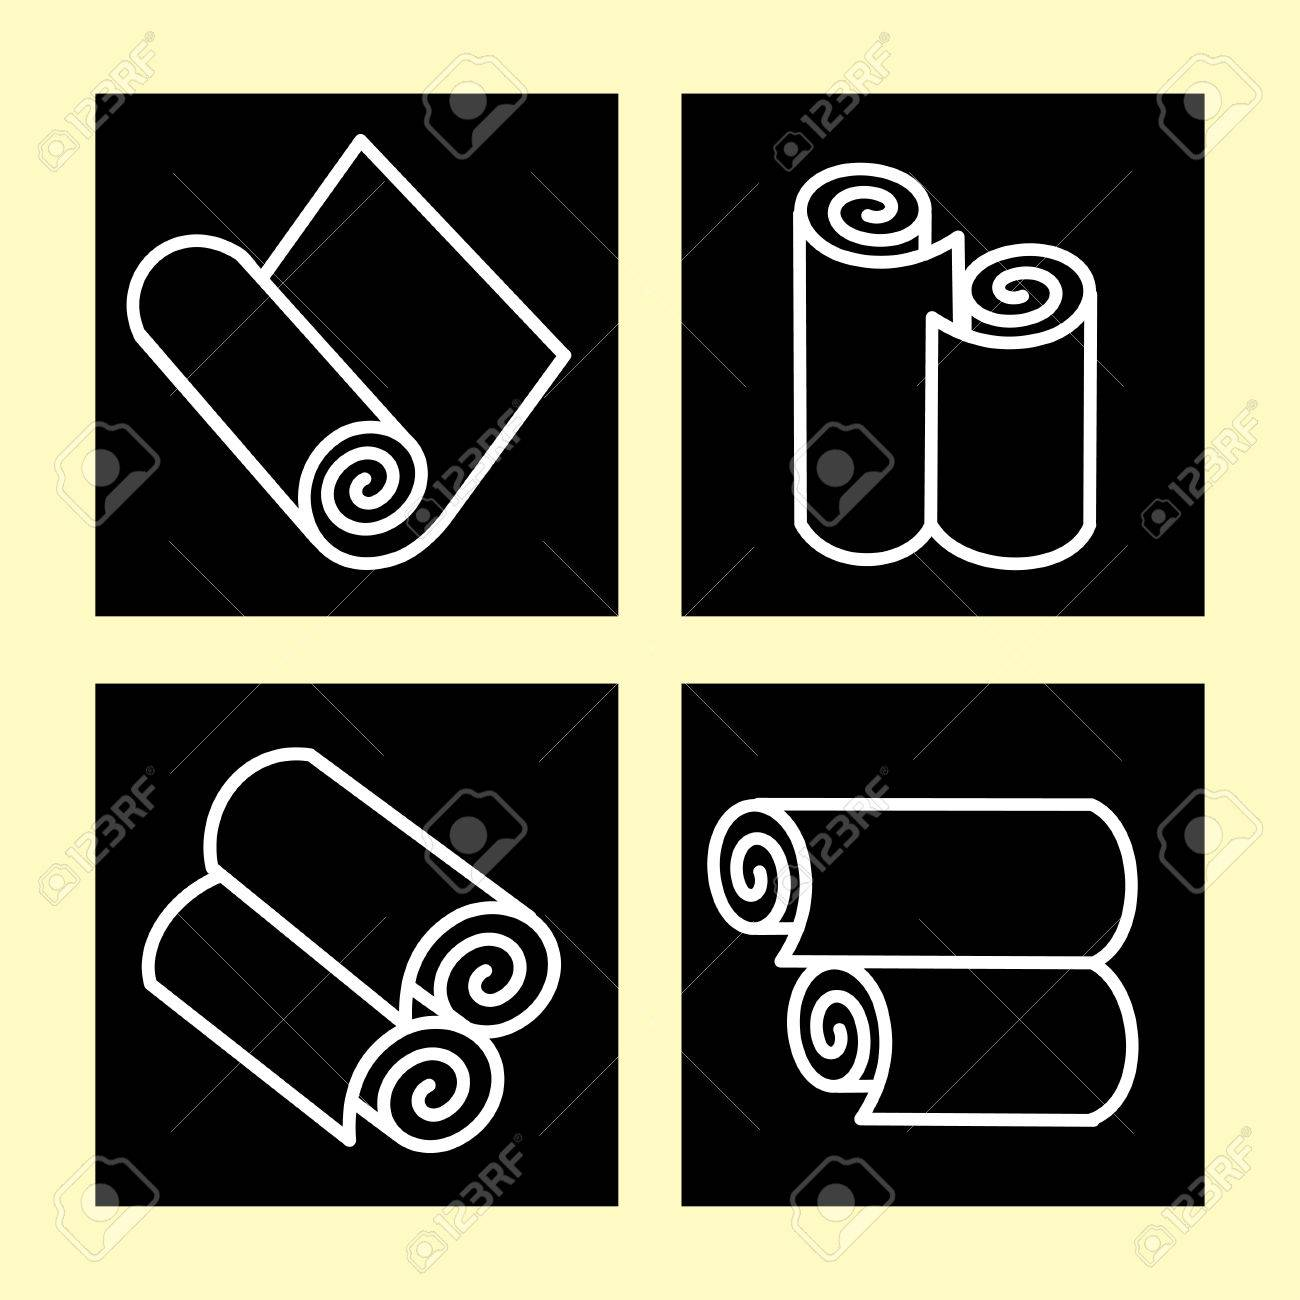 Wallpaper Set Of Vector Icons On Black Background Rolls